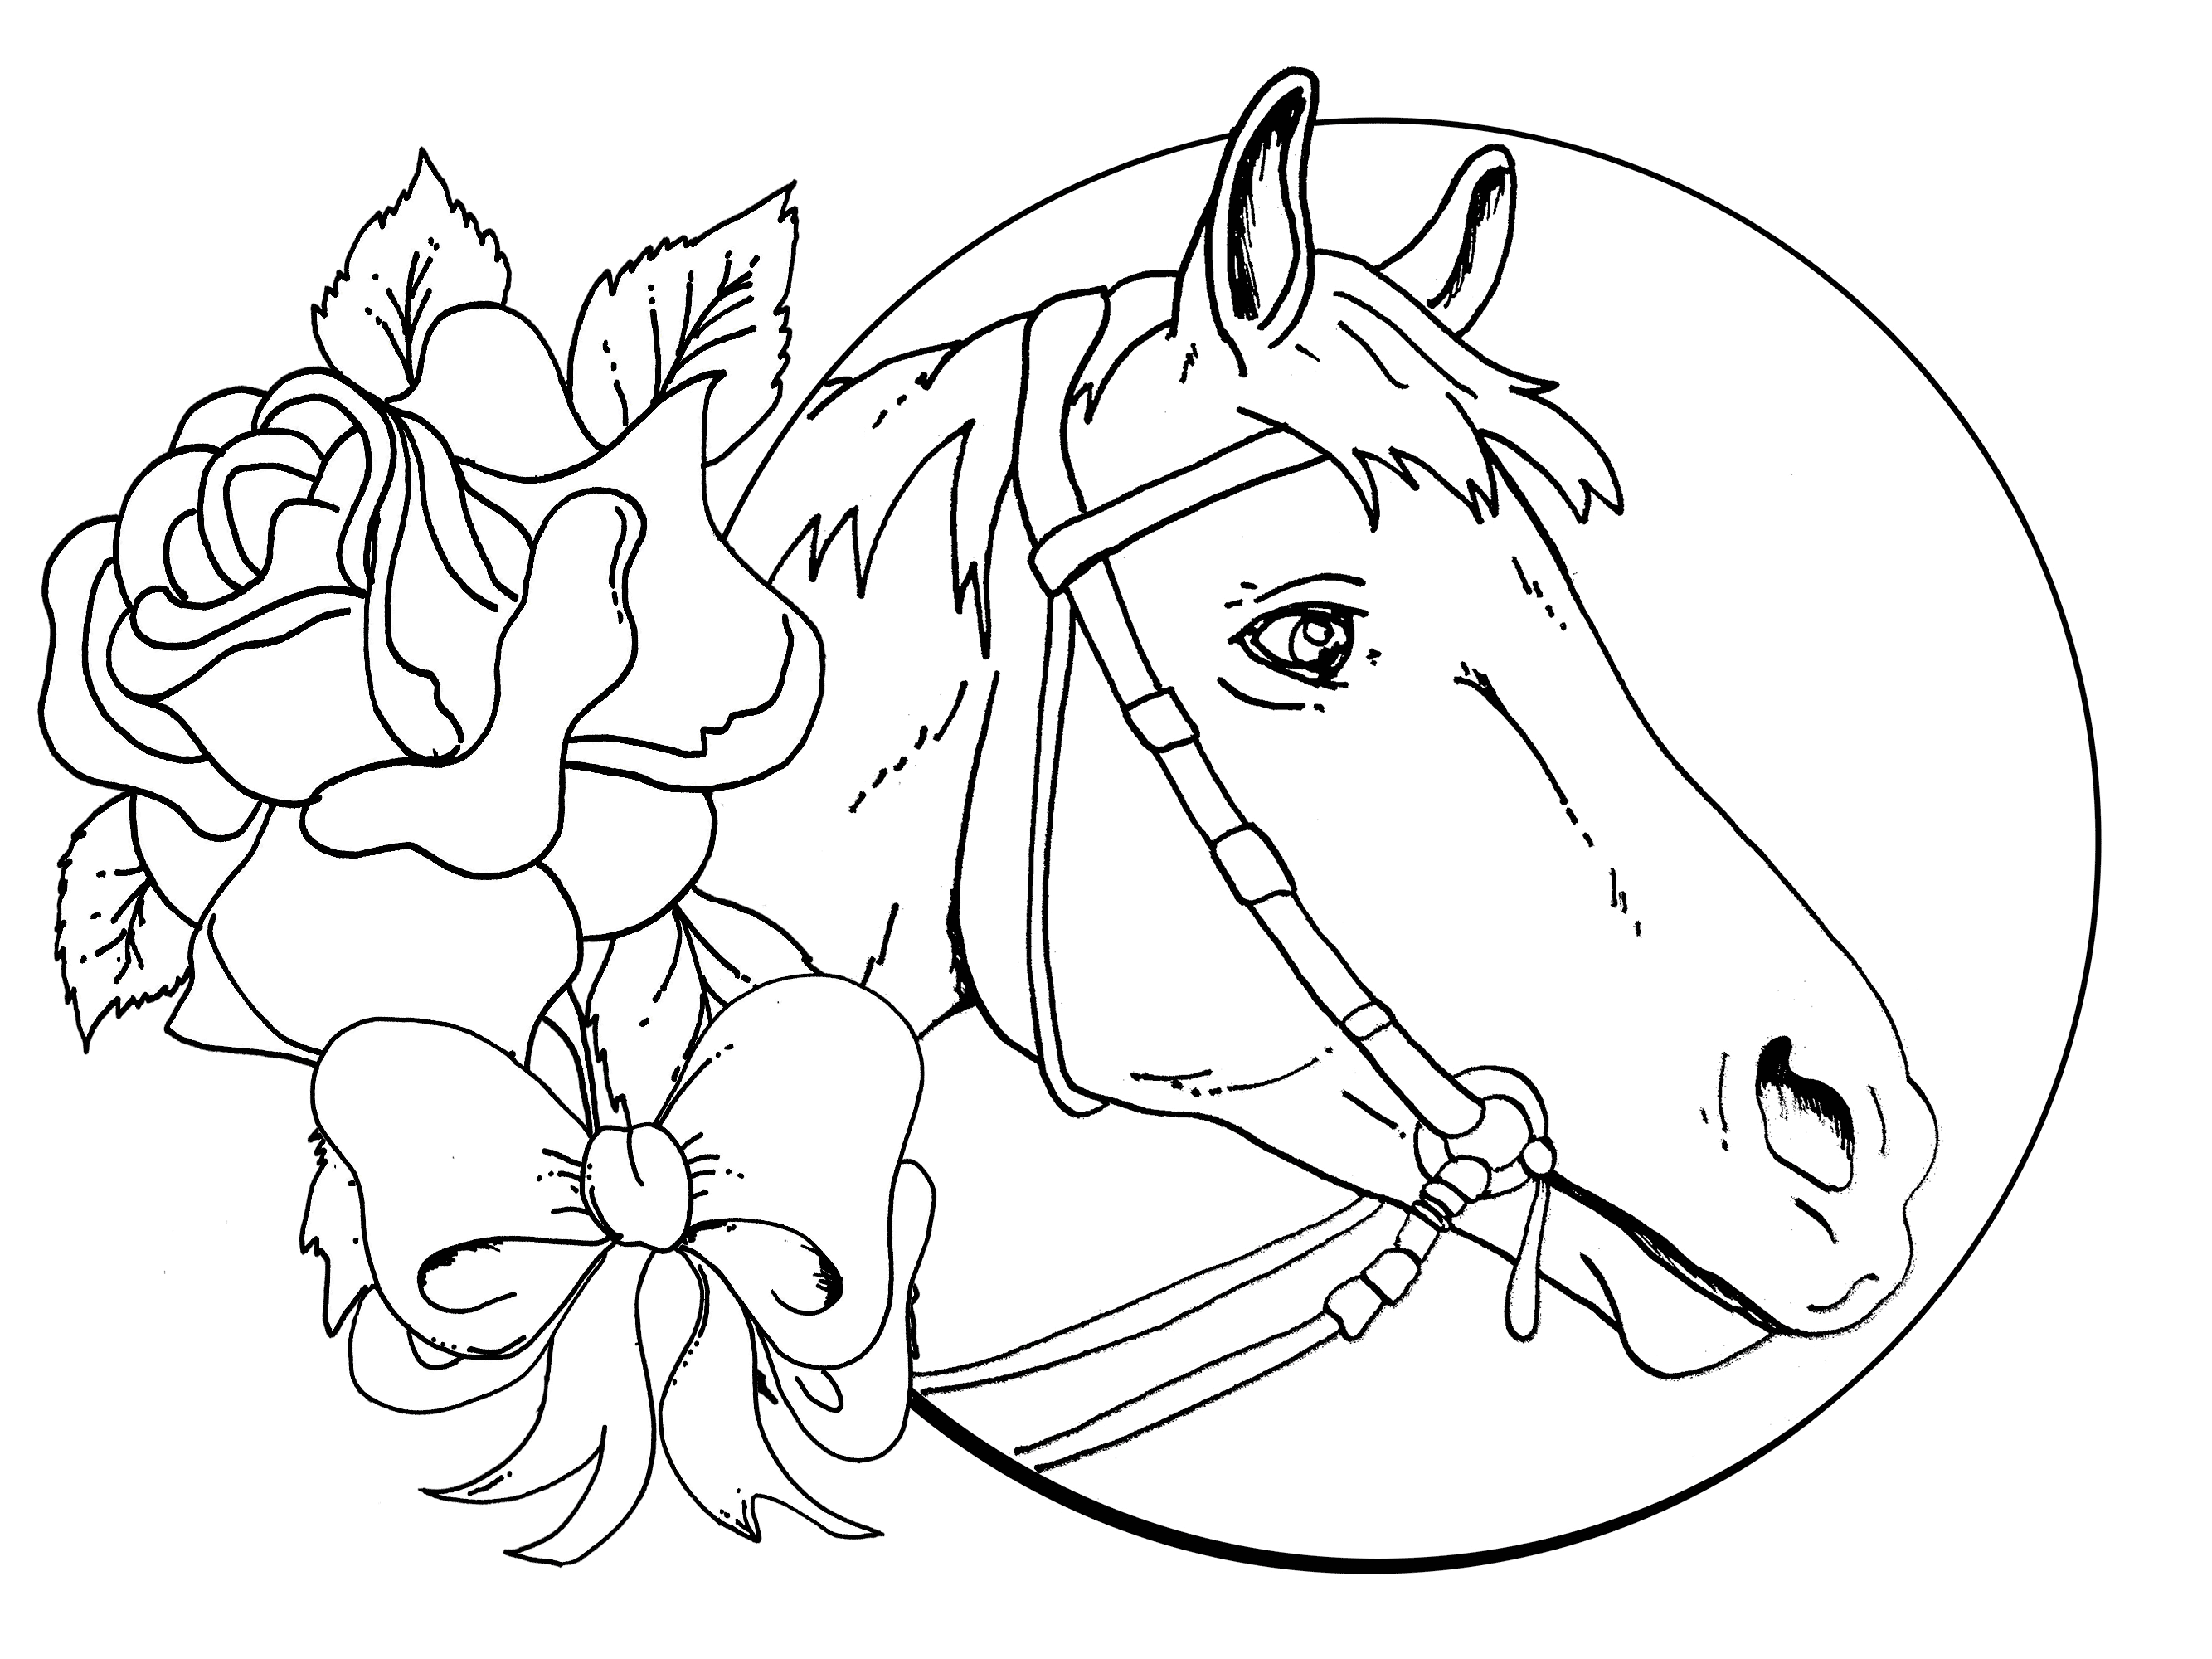 Coloring Pages For Girls (1)